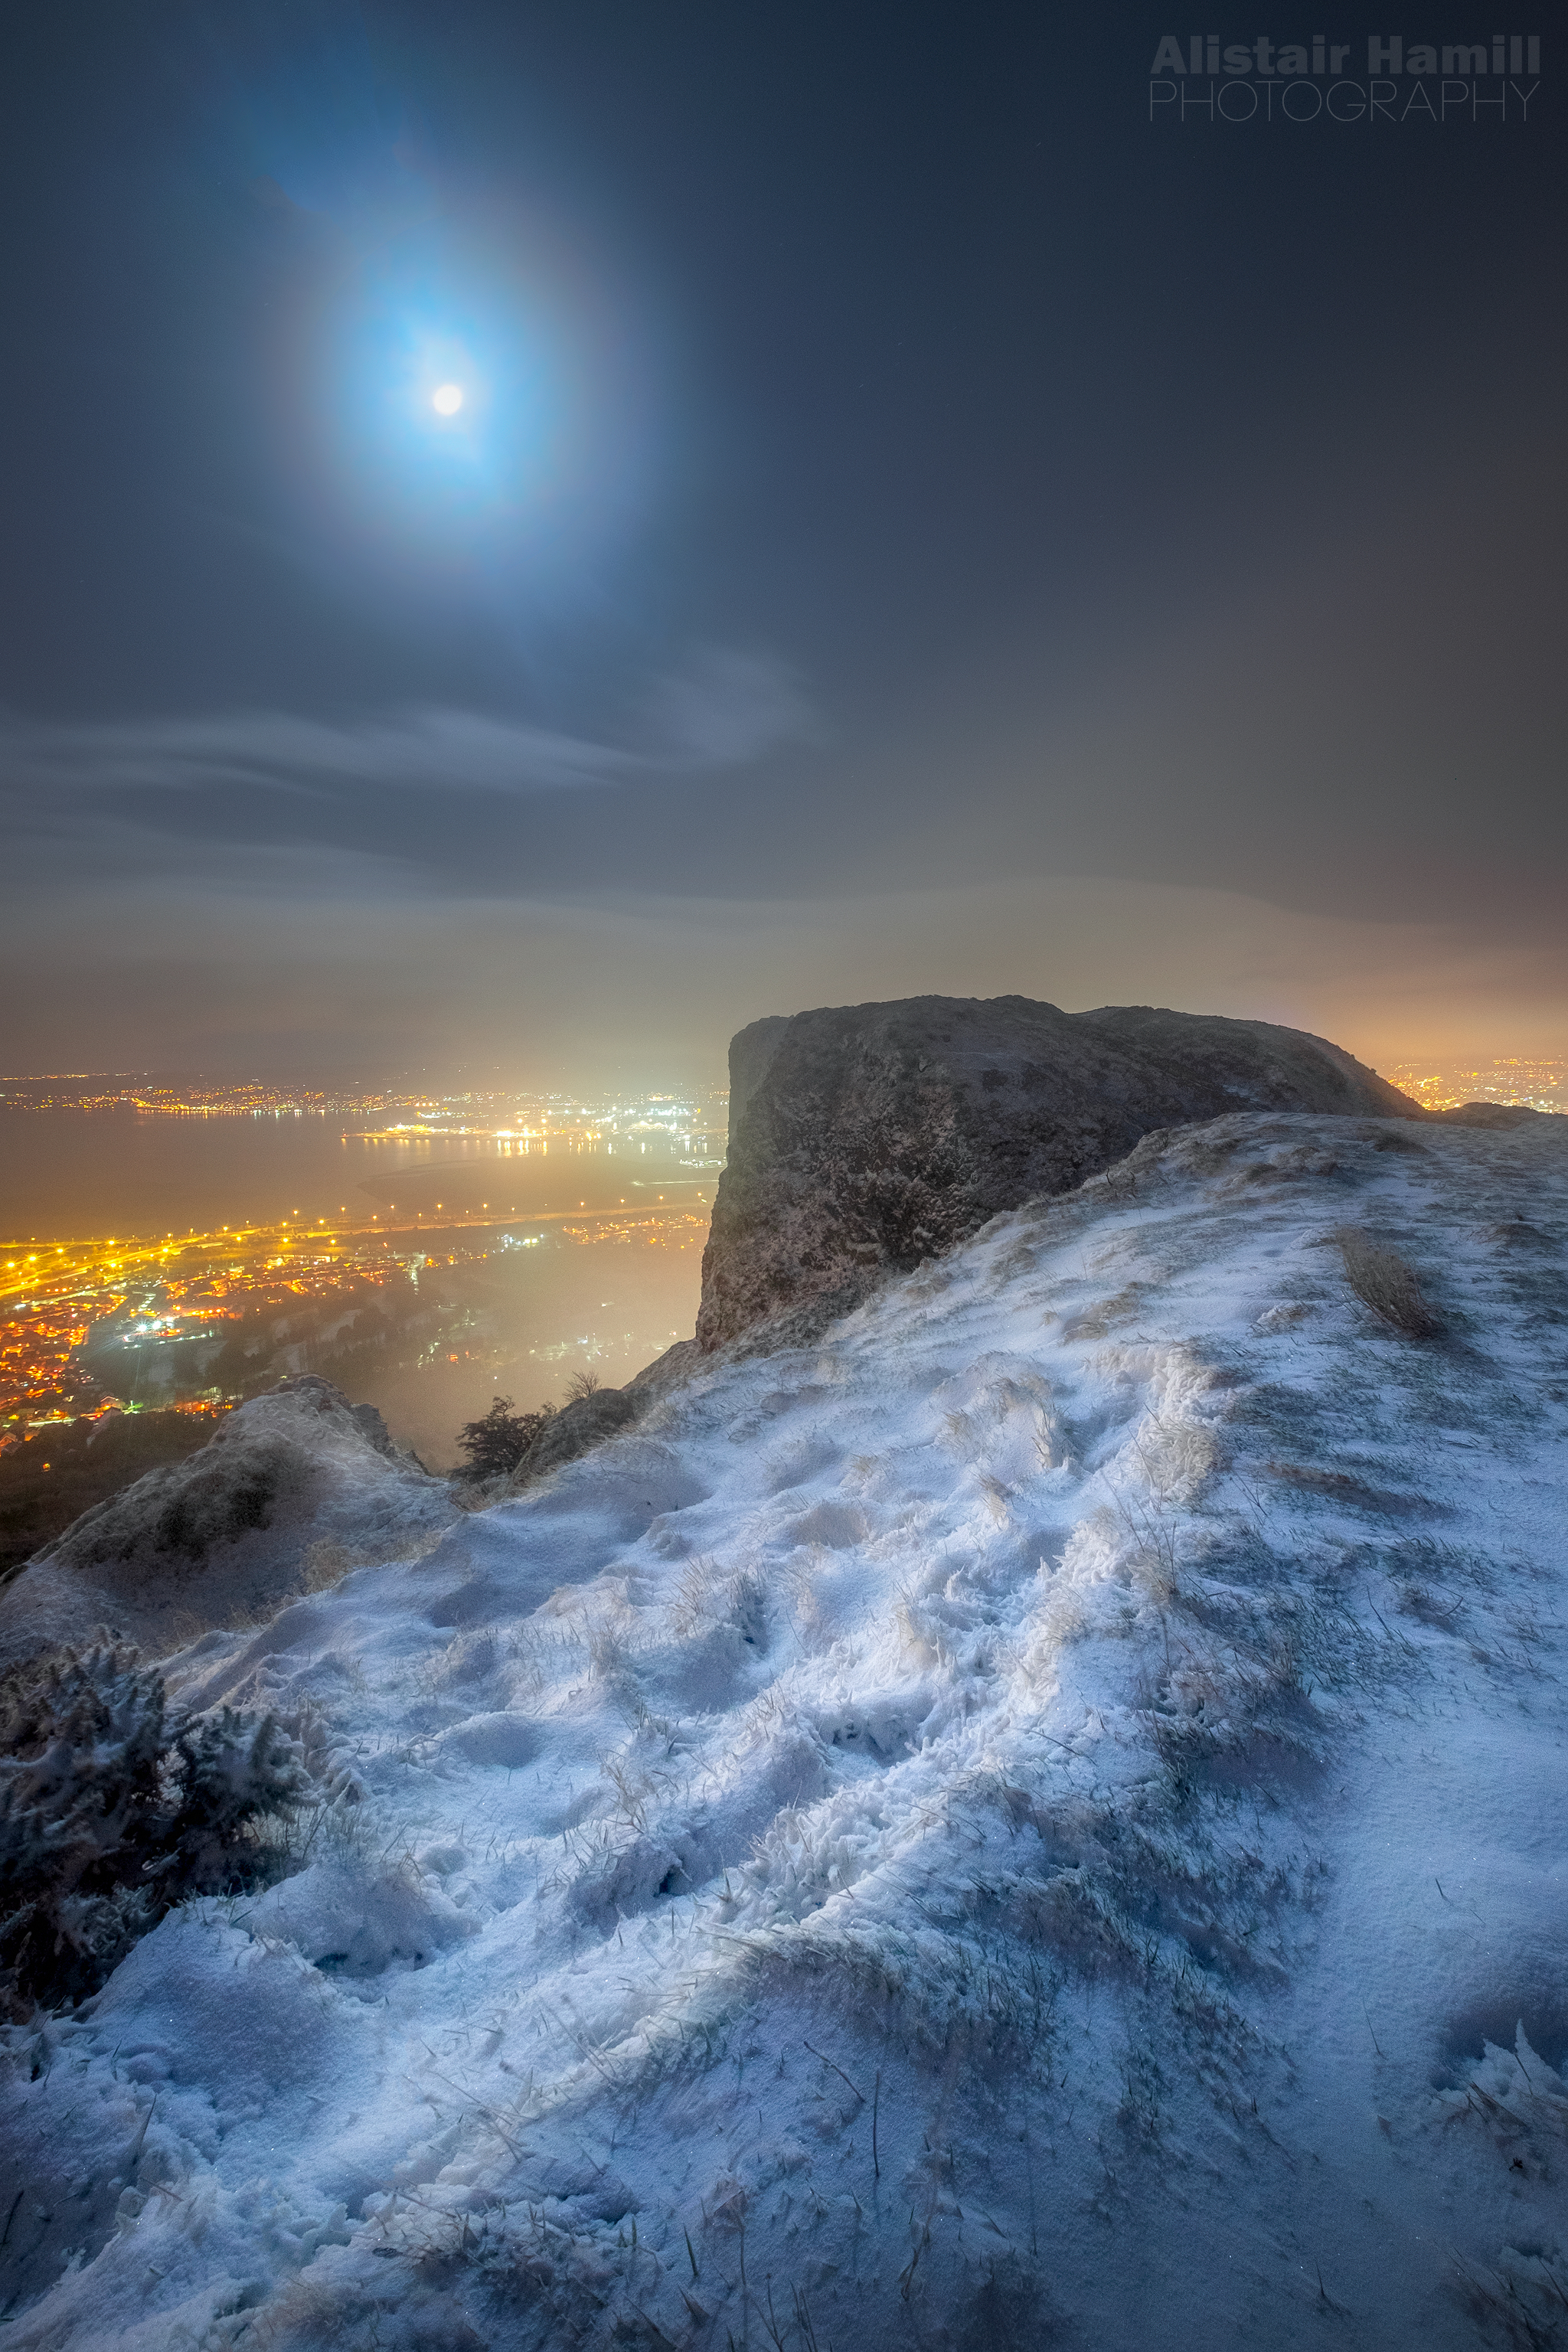 Moon glow above a snowy Cavehill